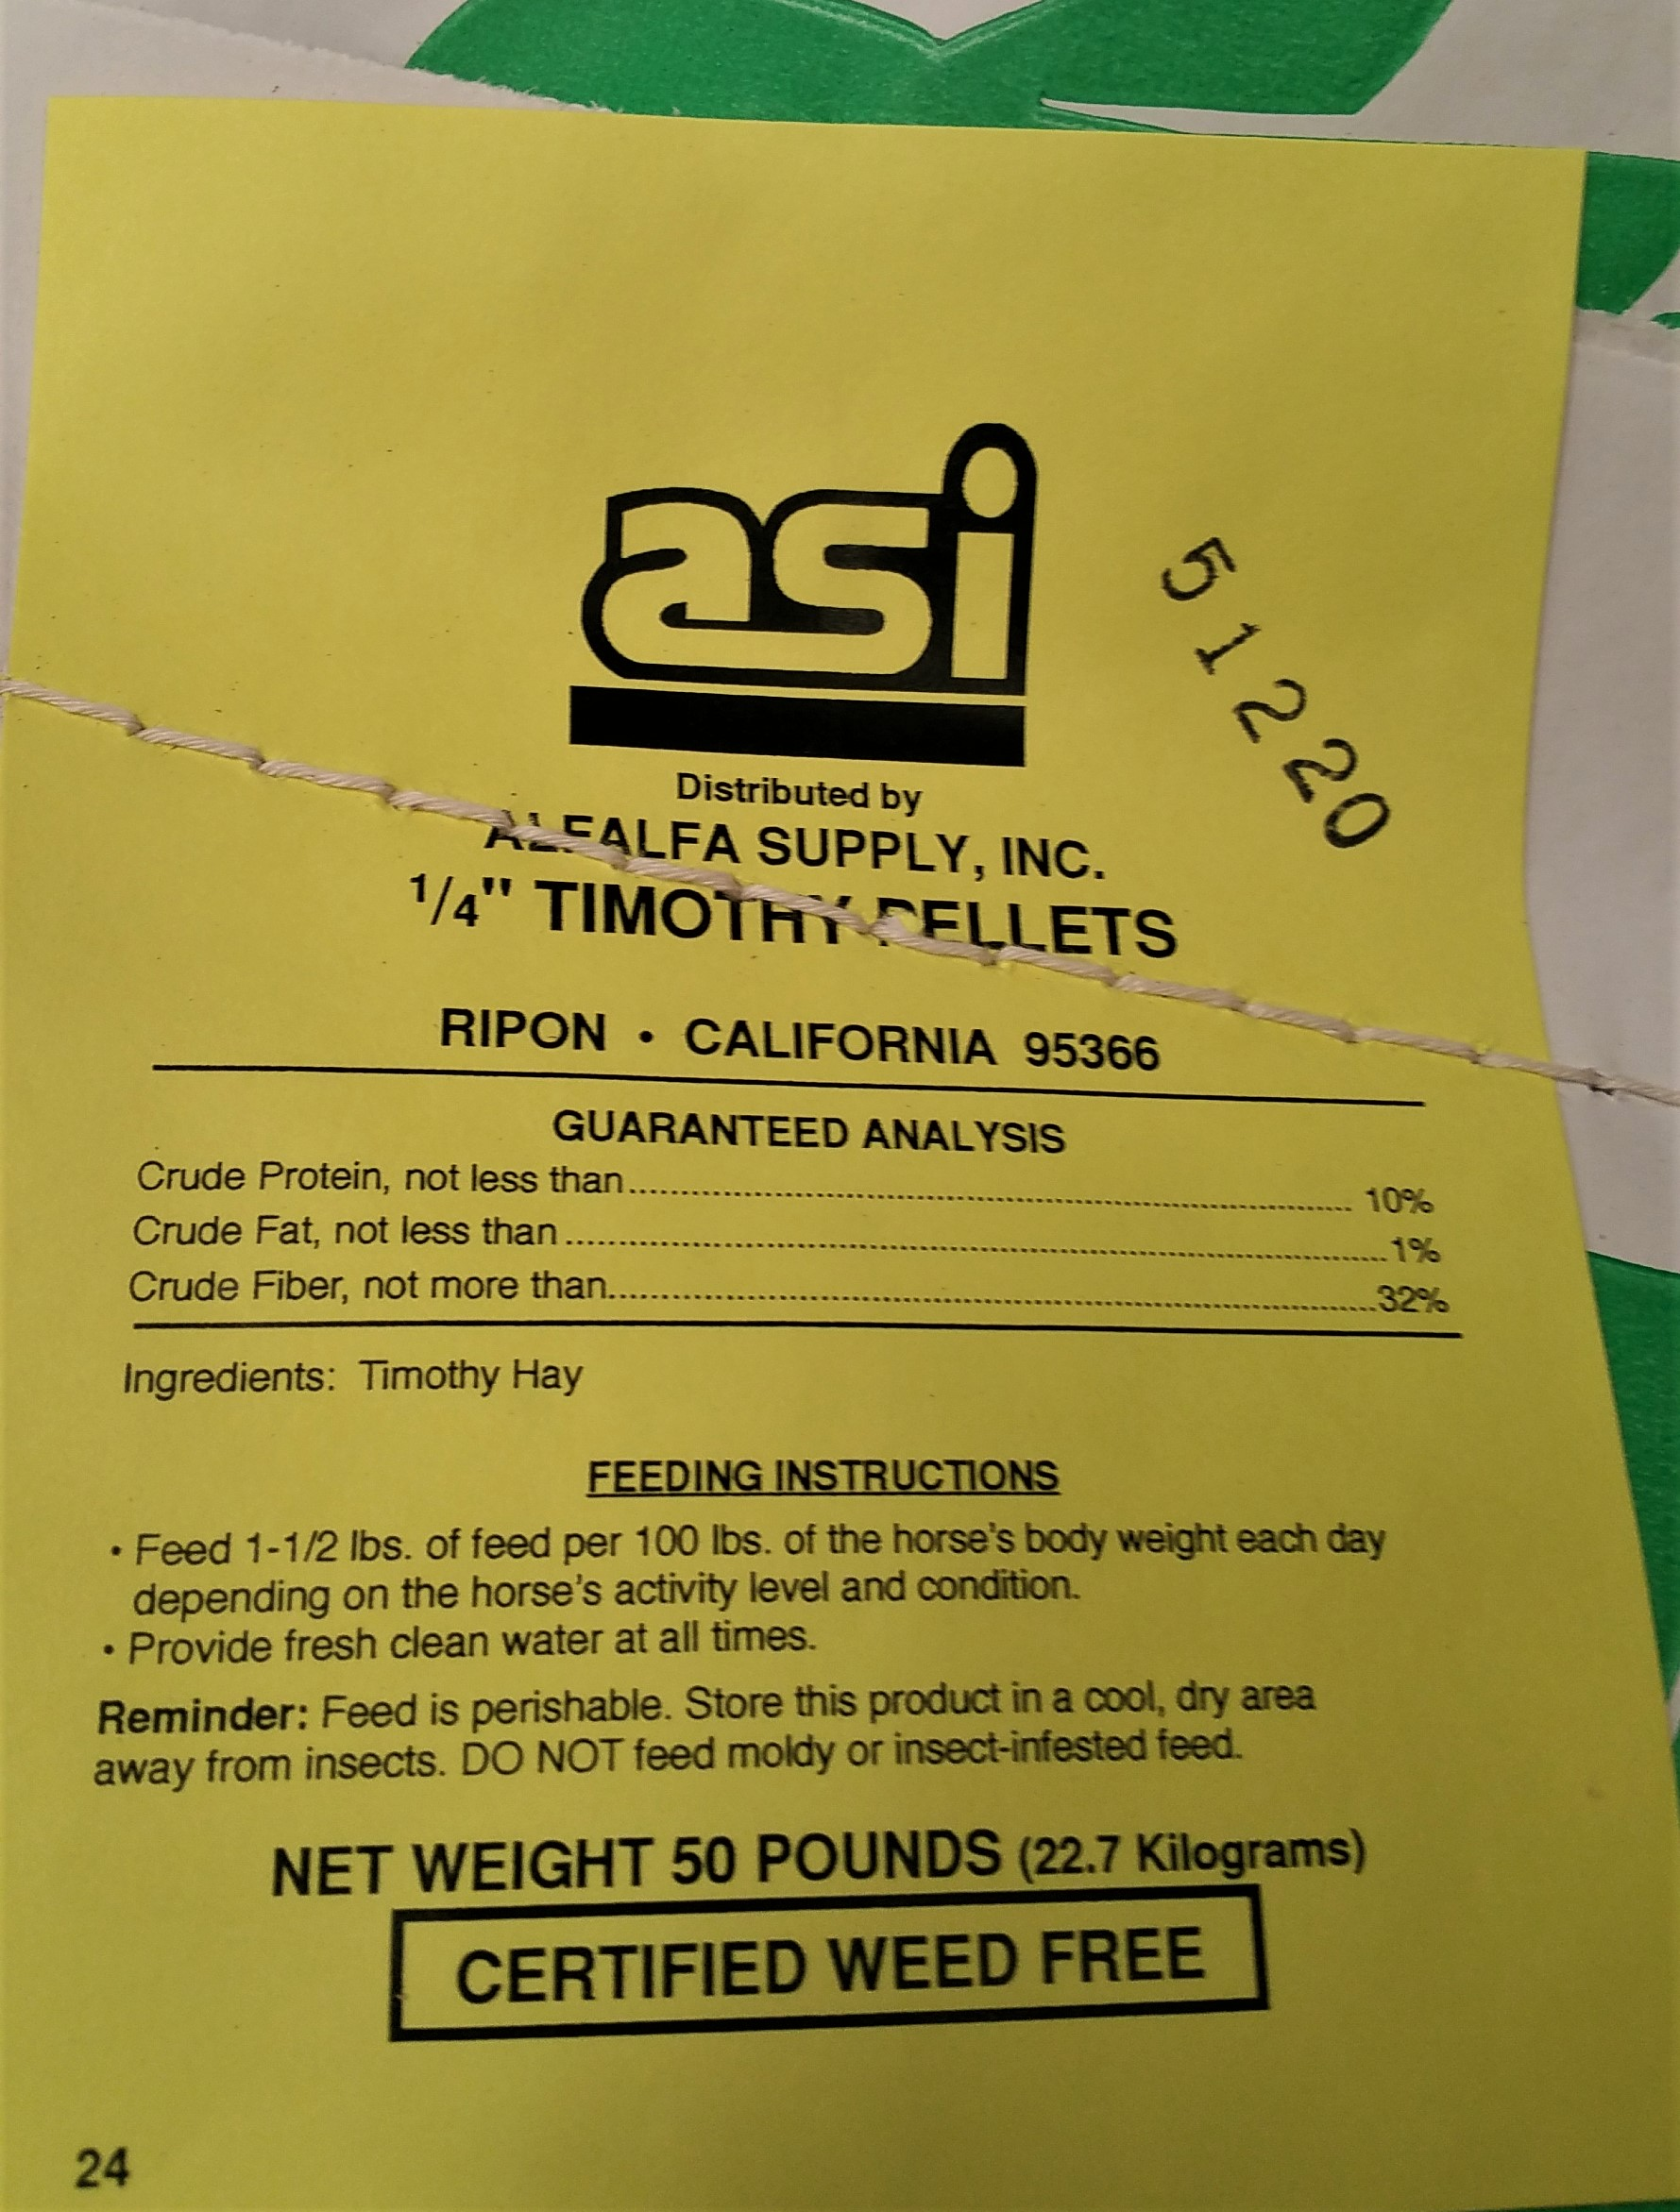 asi-distributed-by-alfalfa-supply-inc-timothy-pellet-yellow-label.jpg